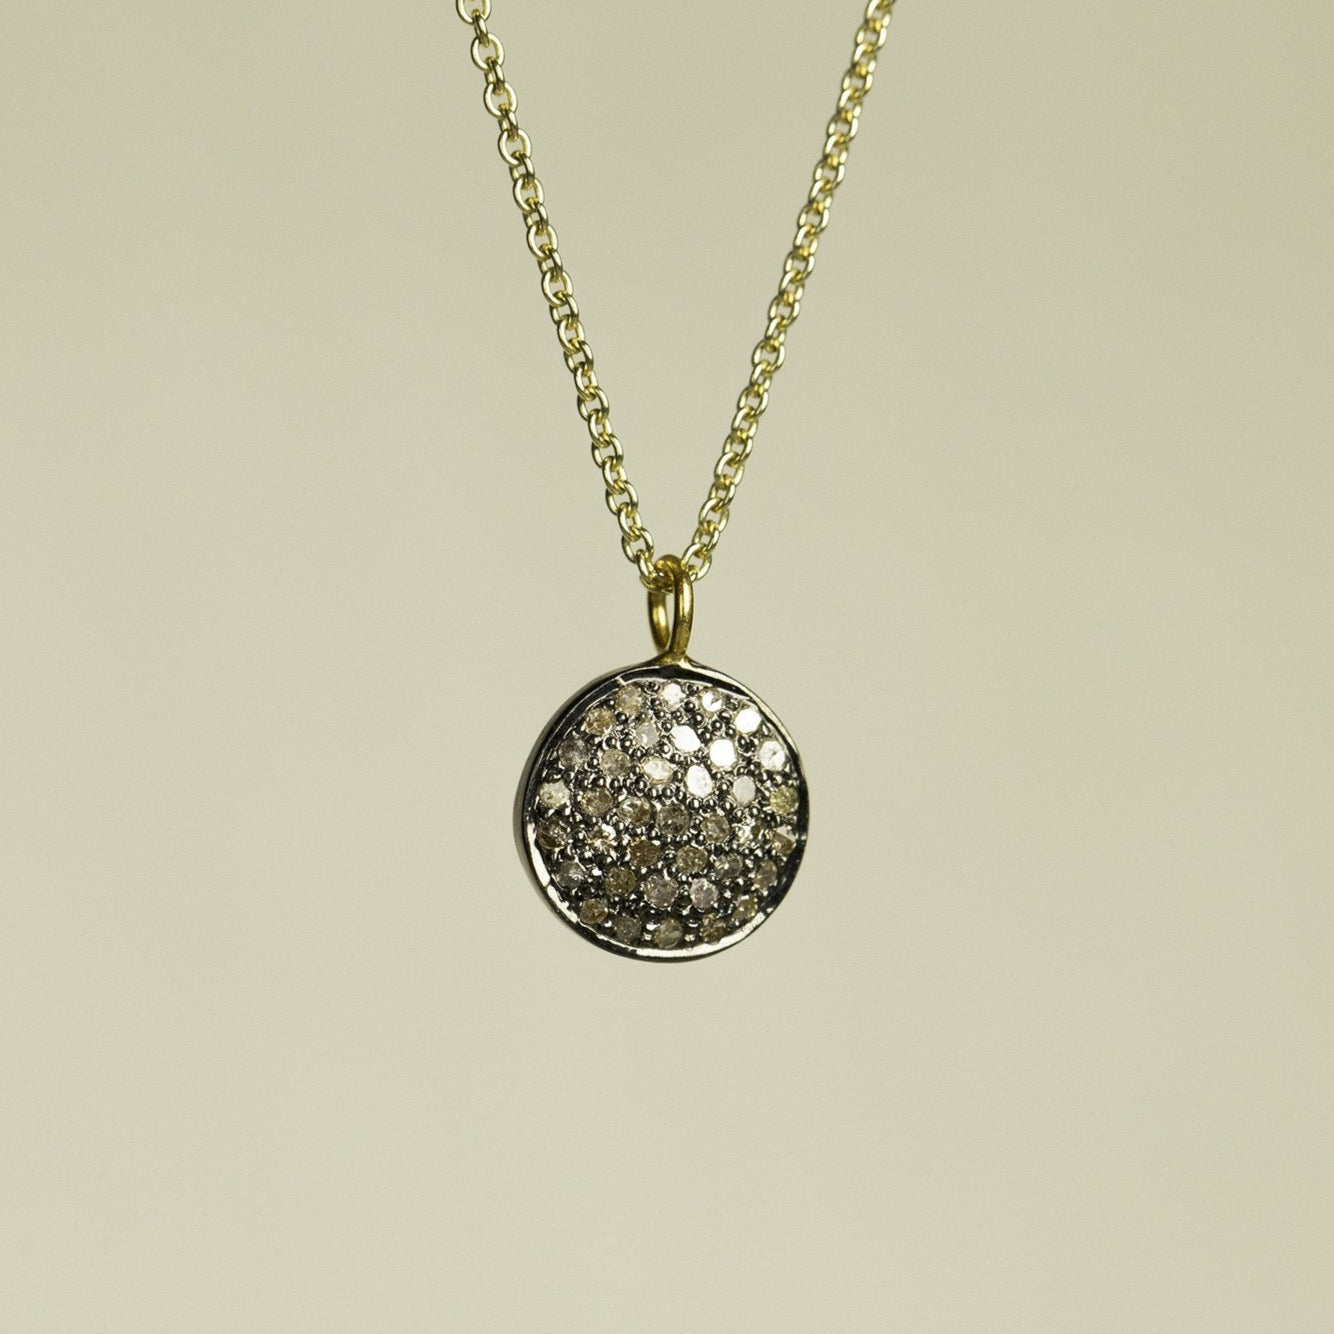 the disc on a chain - we sell the necklace on two different lenghts